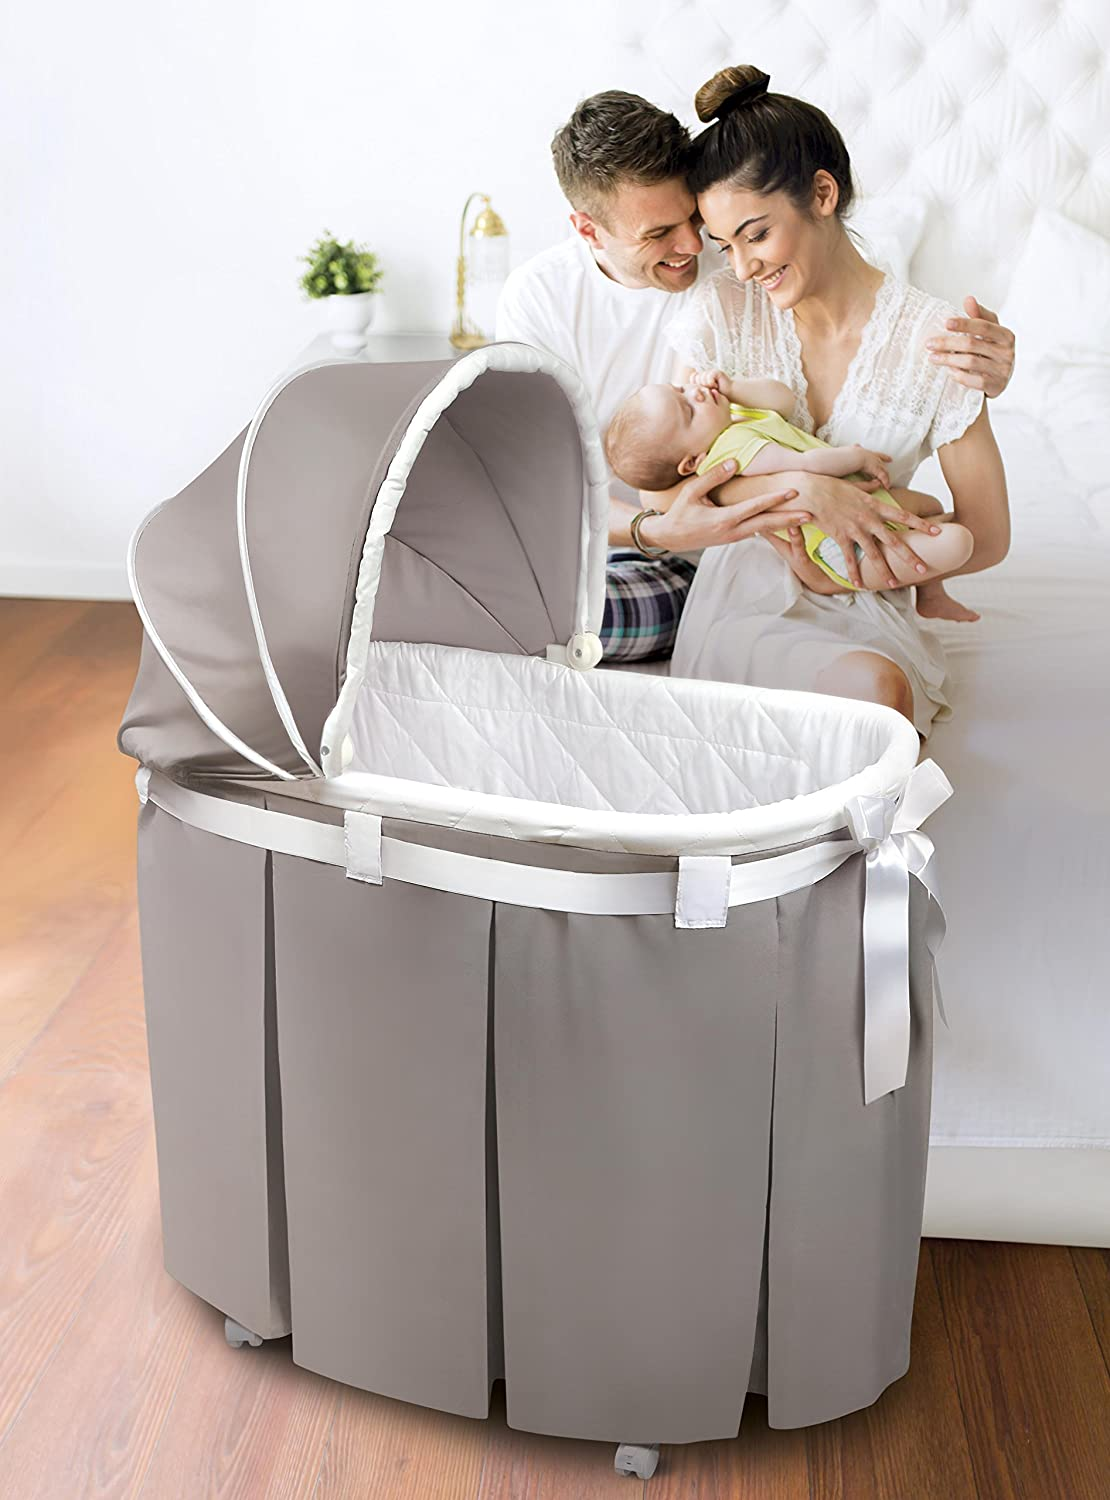 The Badger Basket Wishes Bassinet